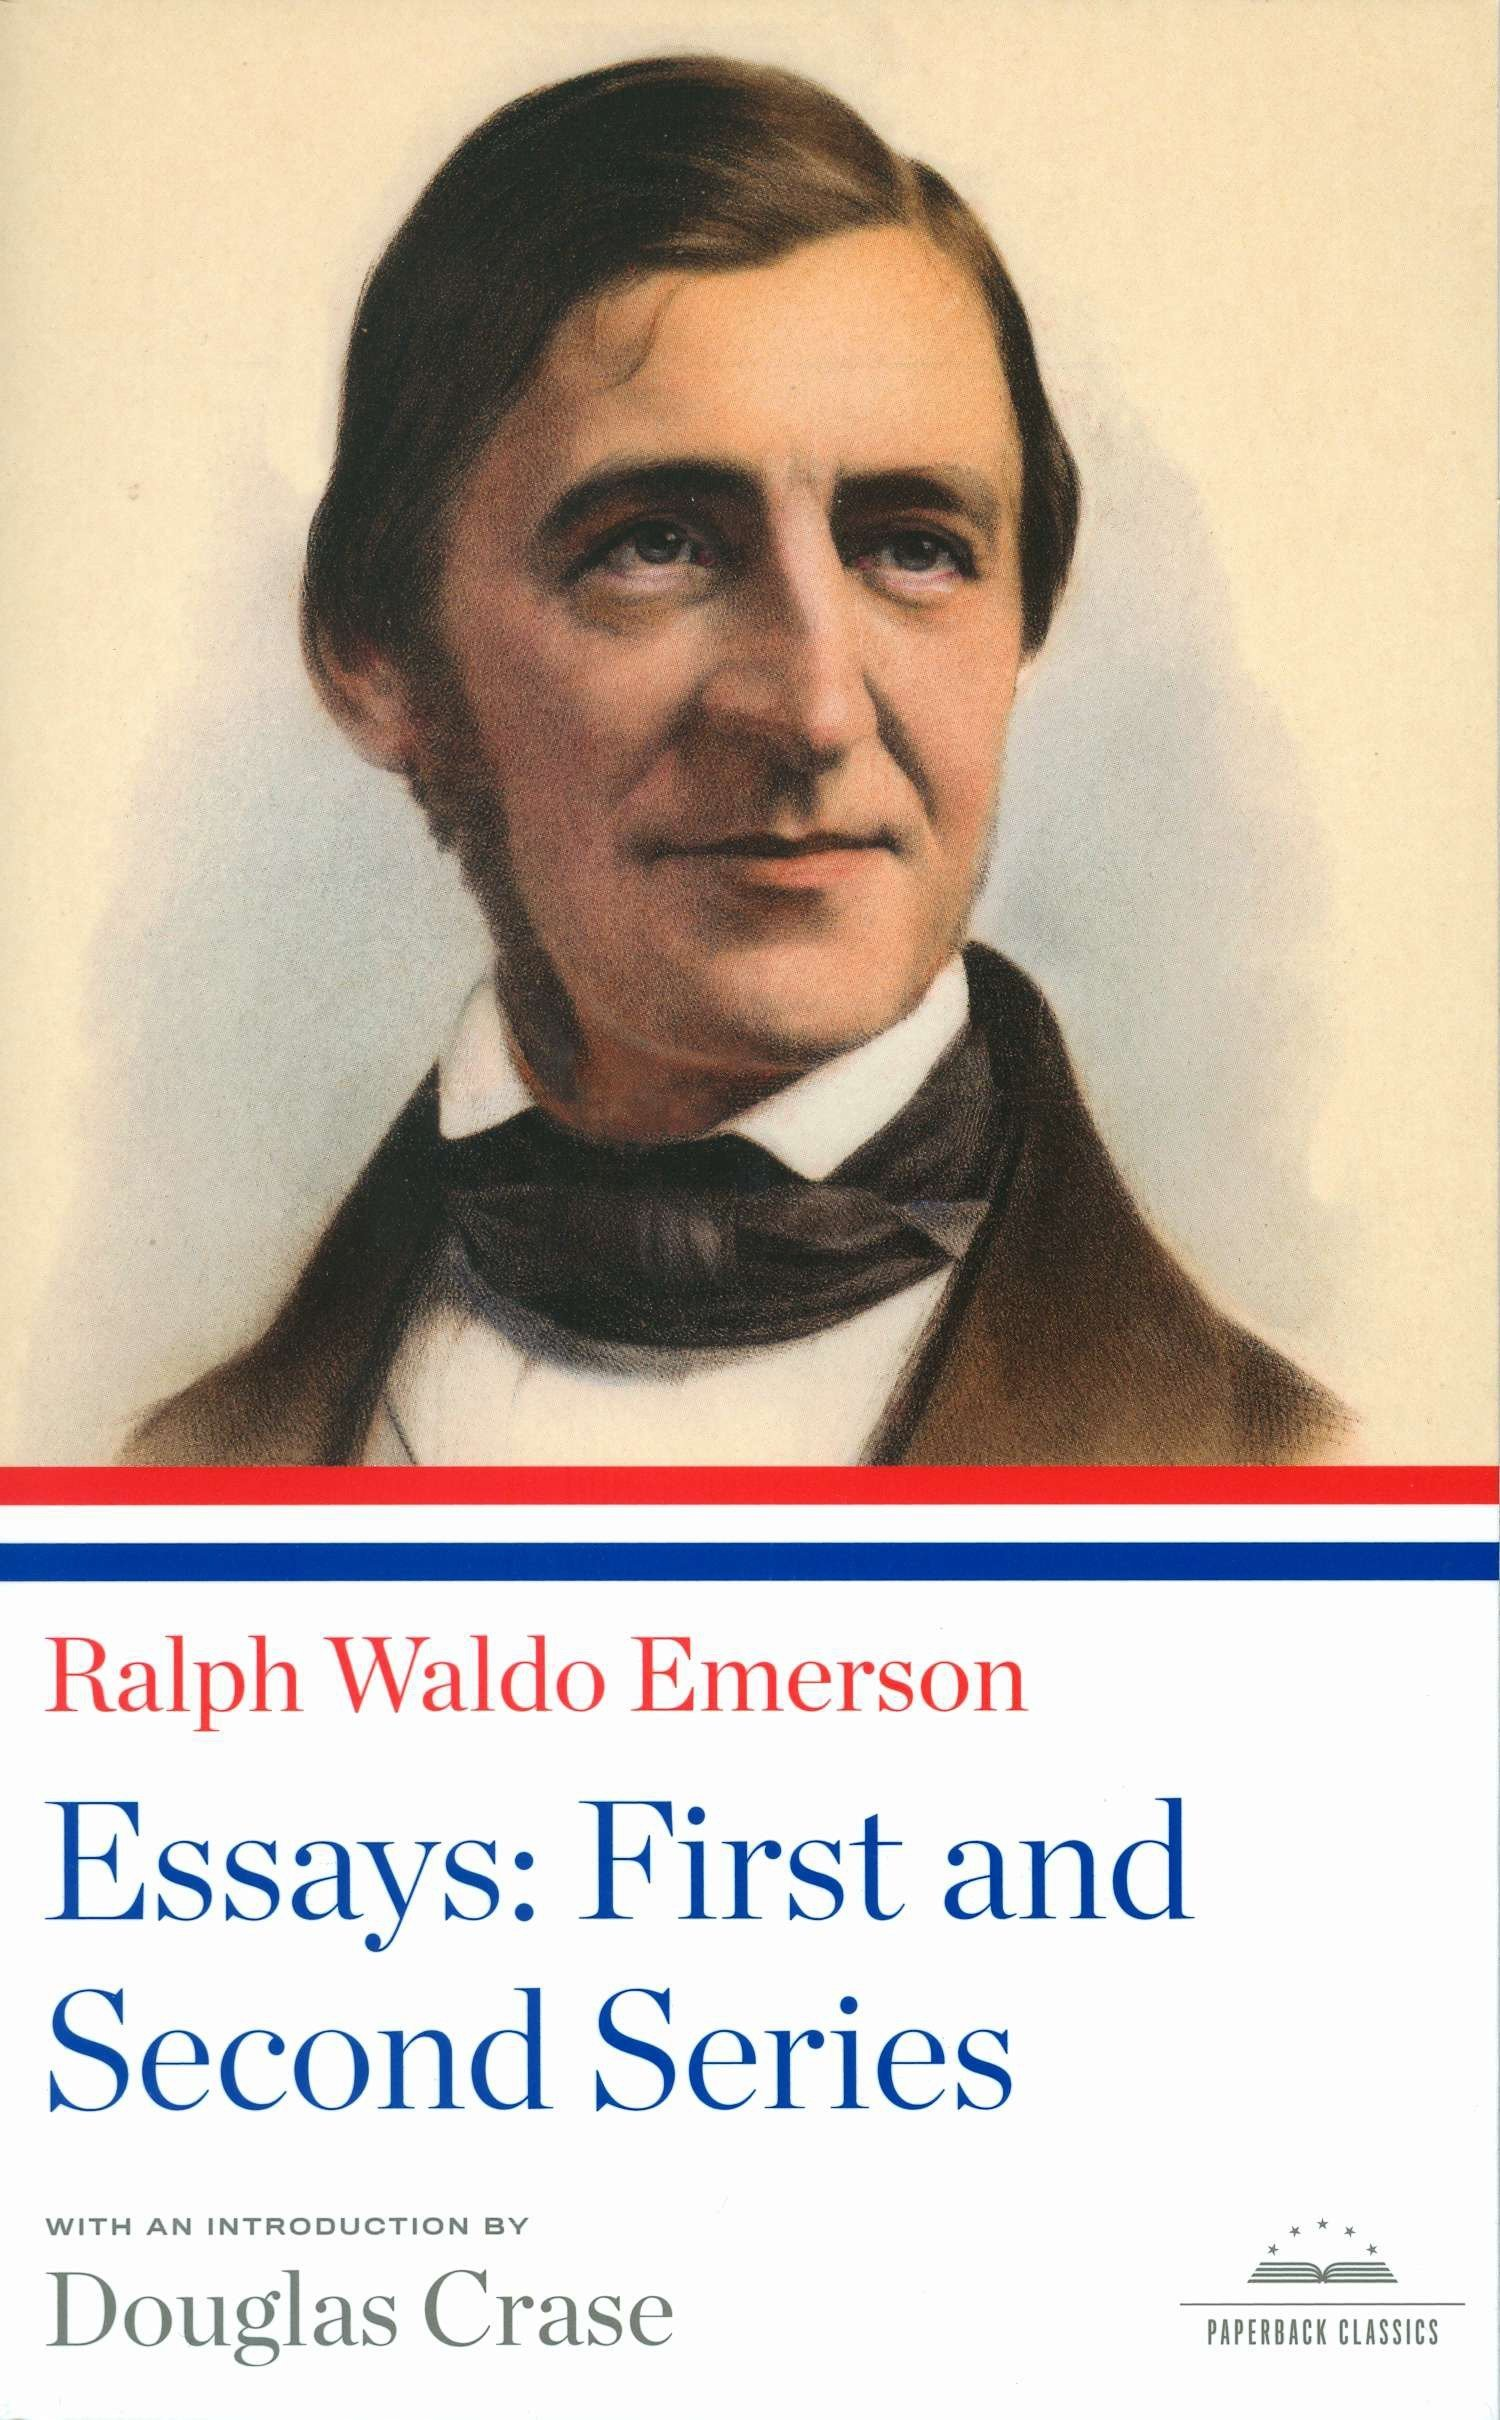 013 81bbtjzup6l Essay Example Ralph Waldo Emerson Unusual Essays Nature And Selected By Pdf Download First Second Series Full